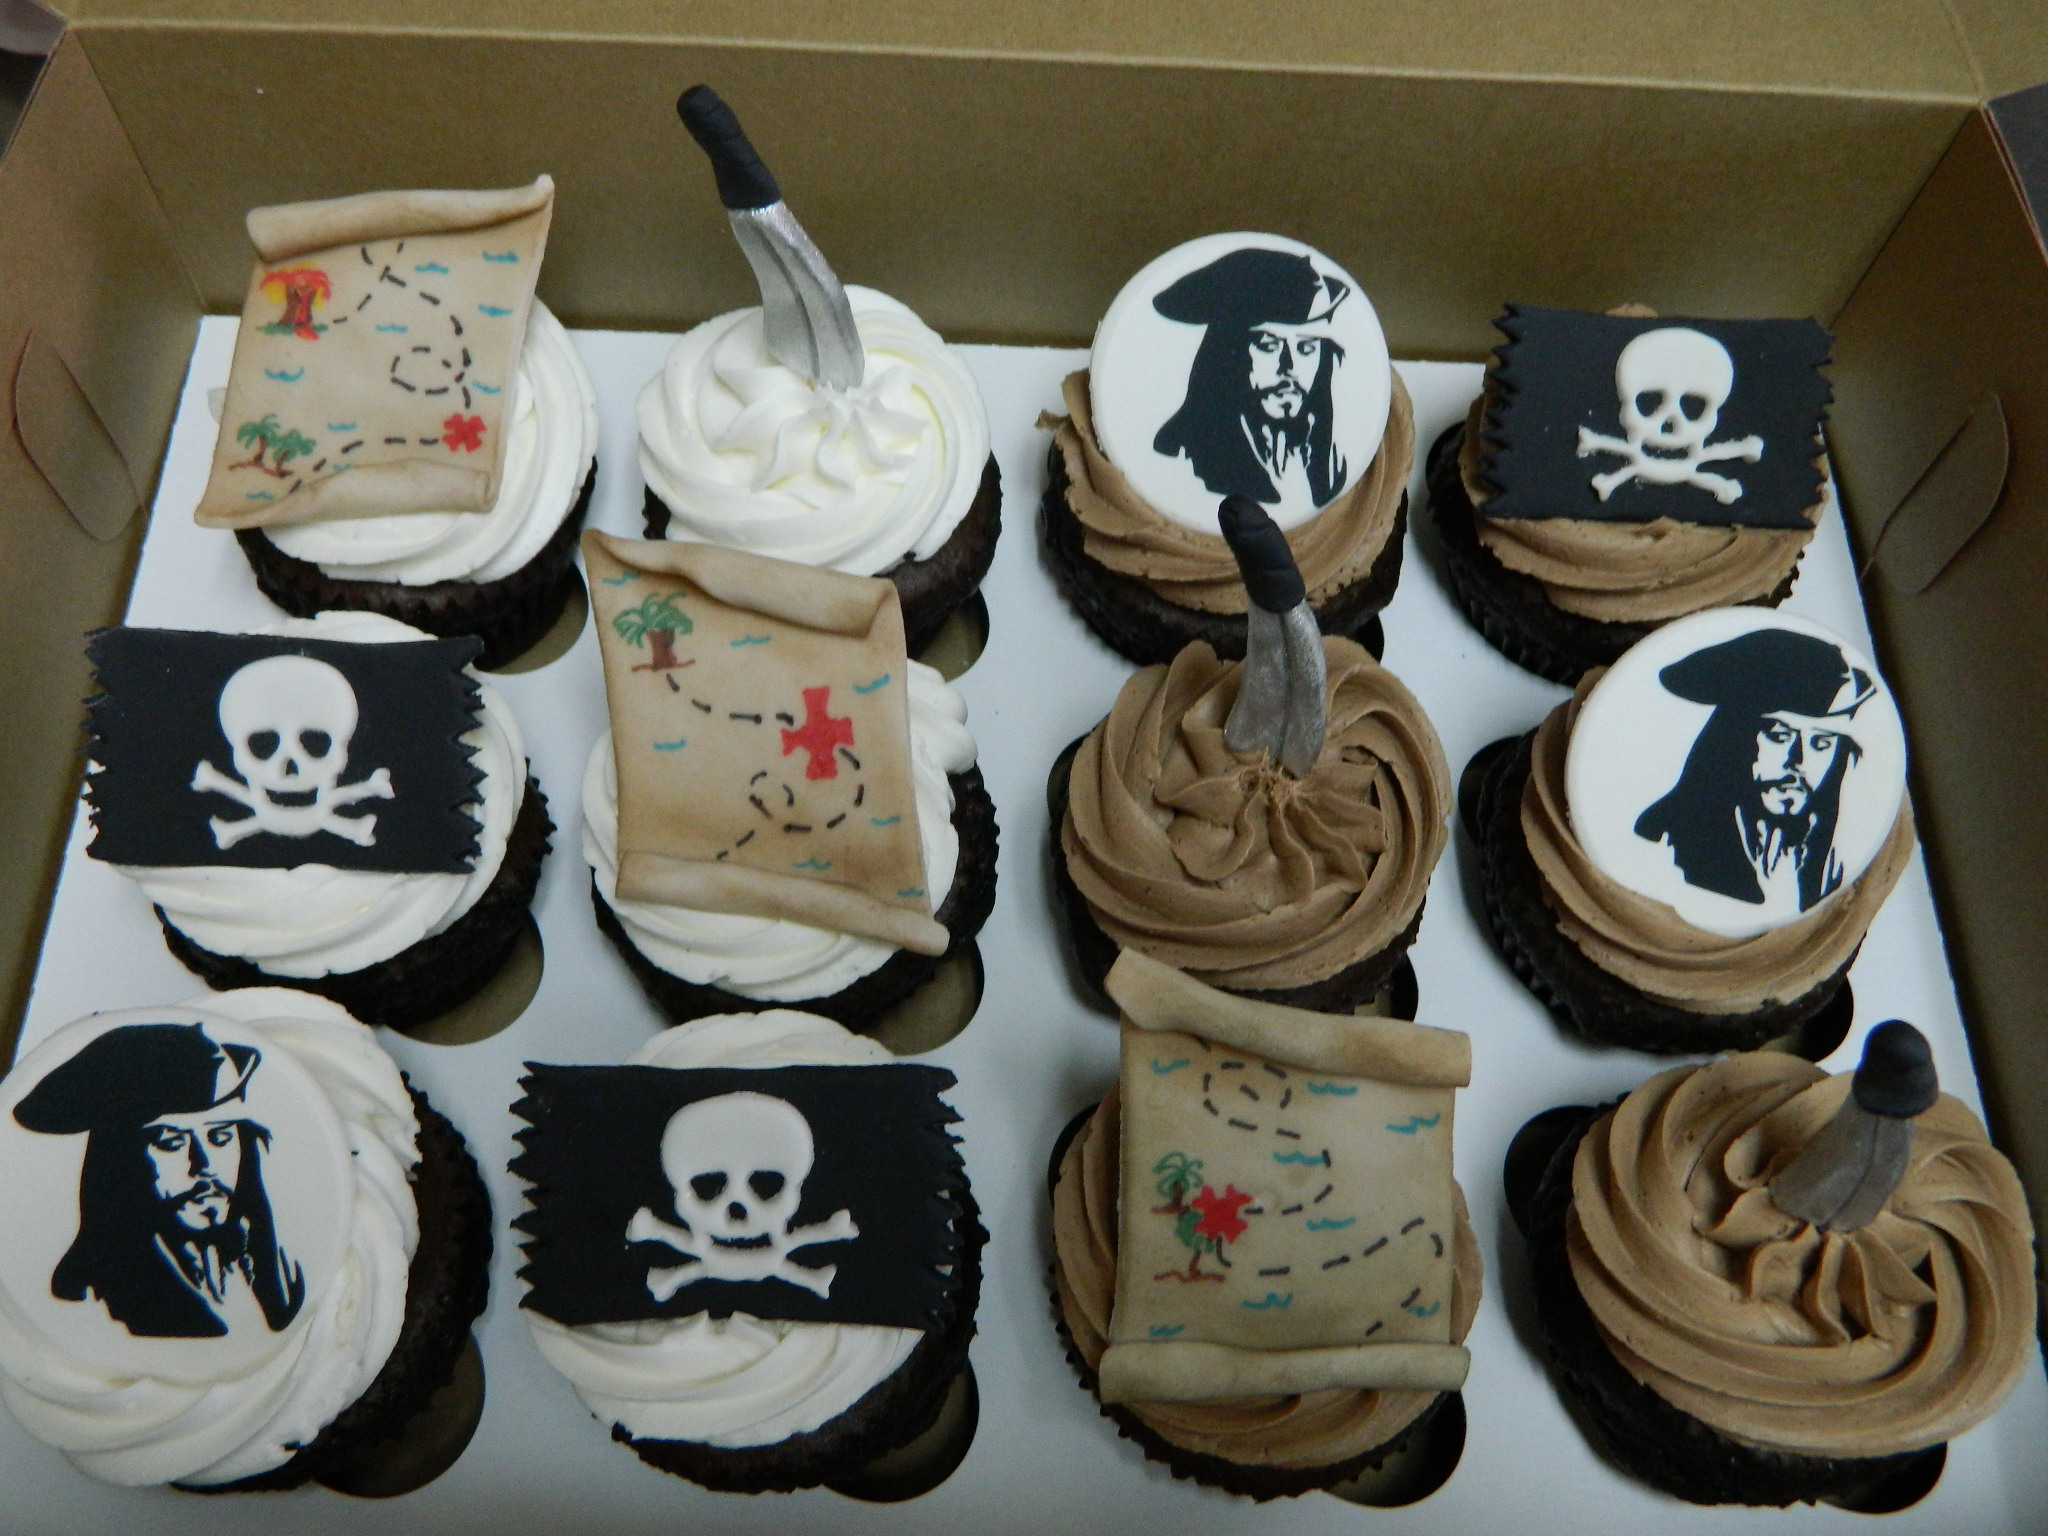 Pirate themed custom cupcakes (this was for a wish reveal for Make-a-Wish)